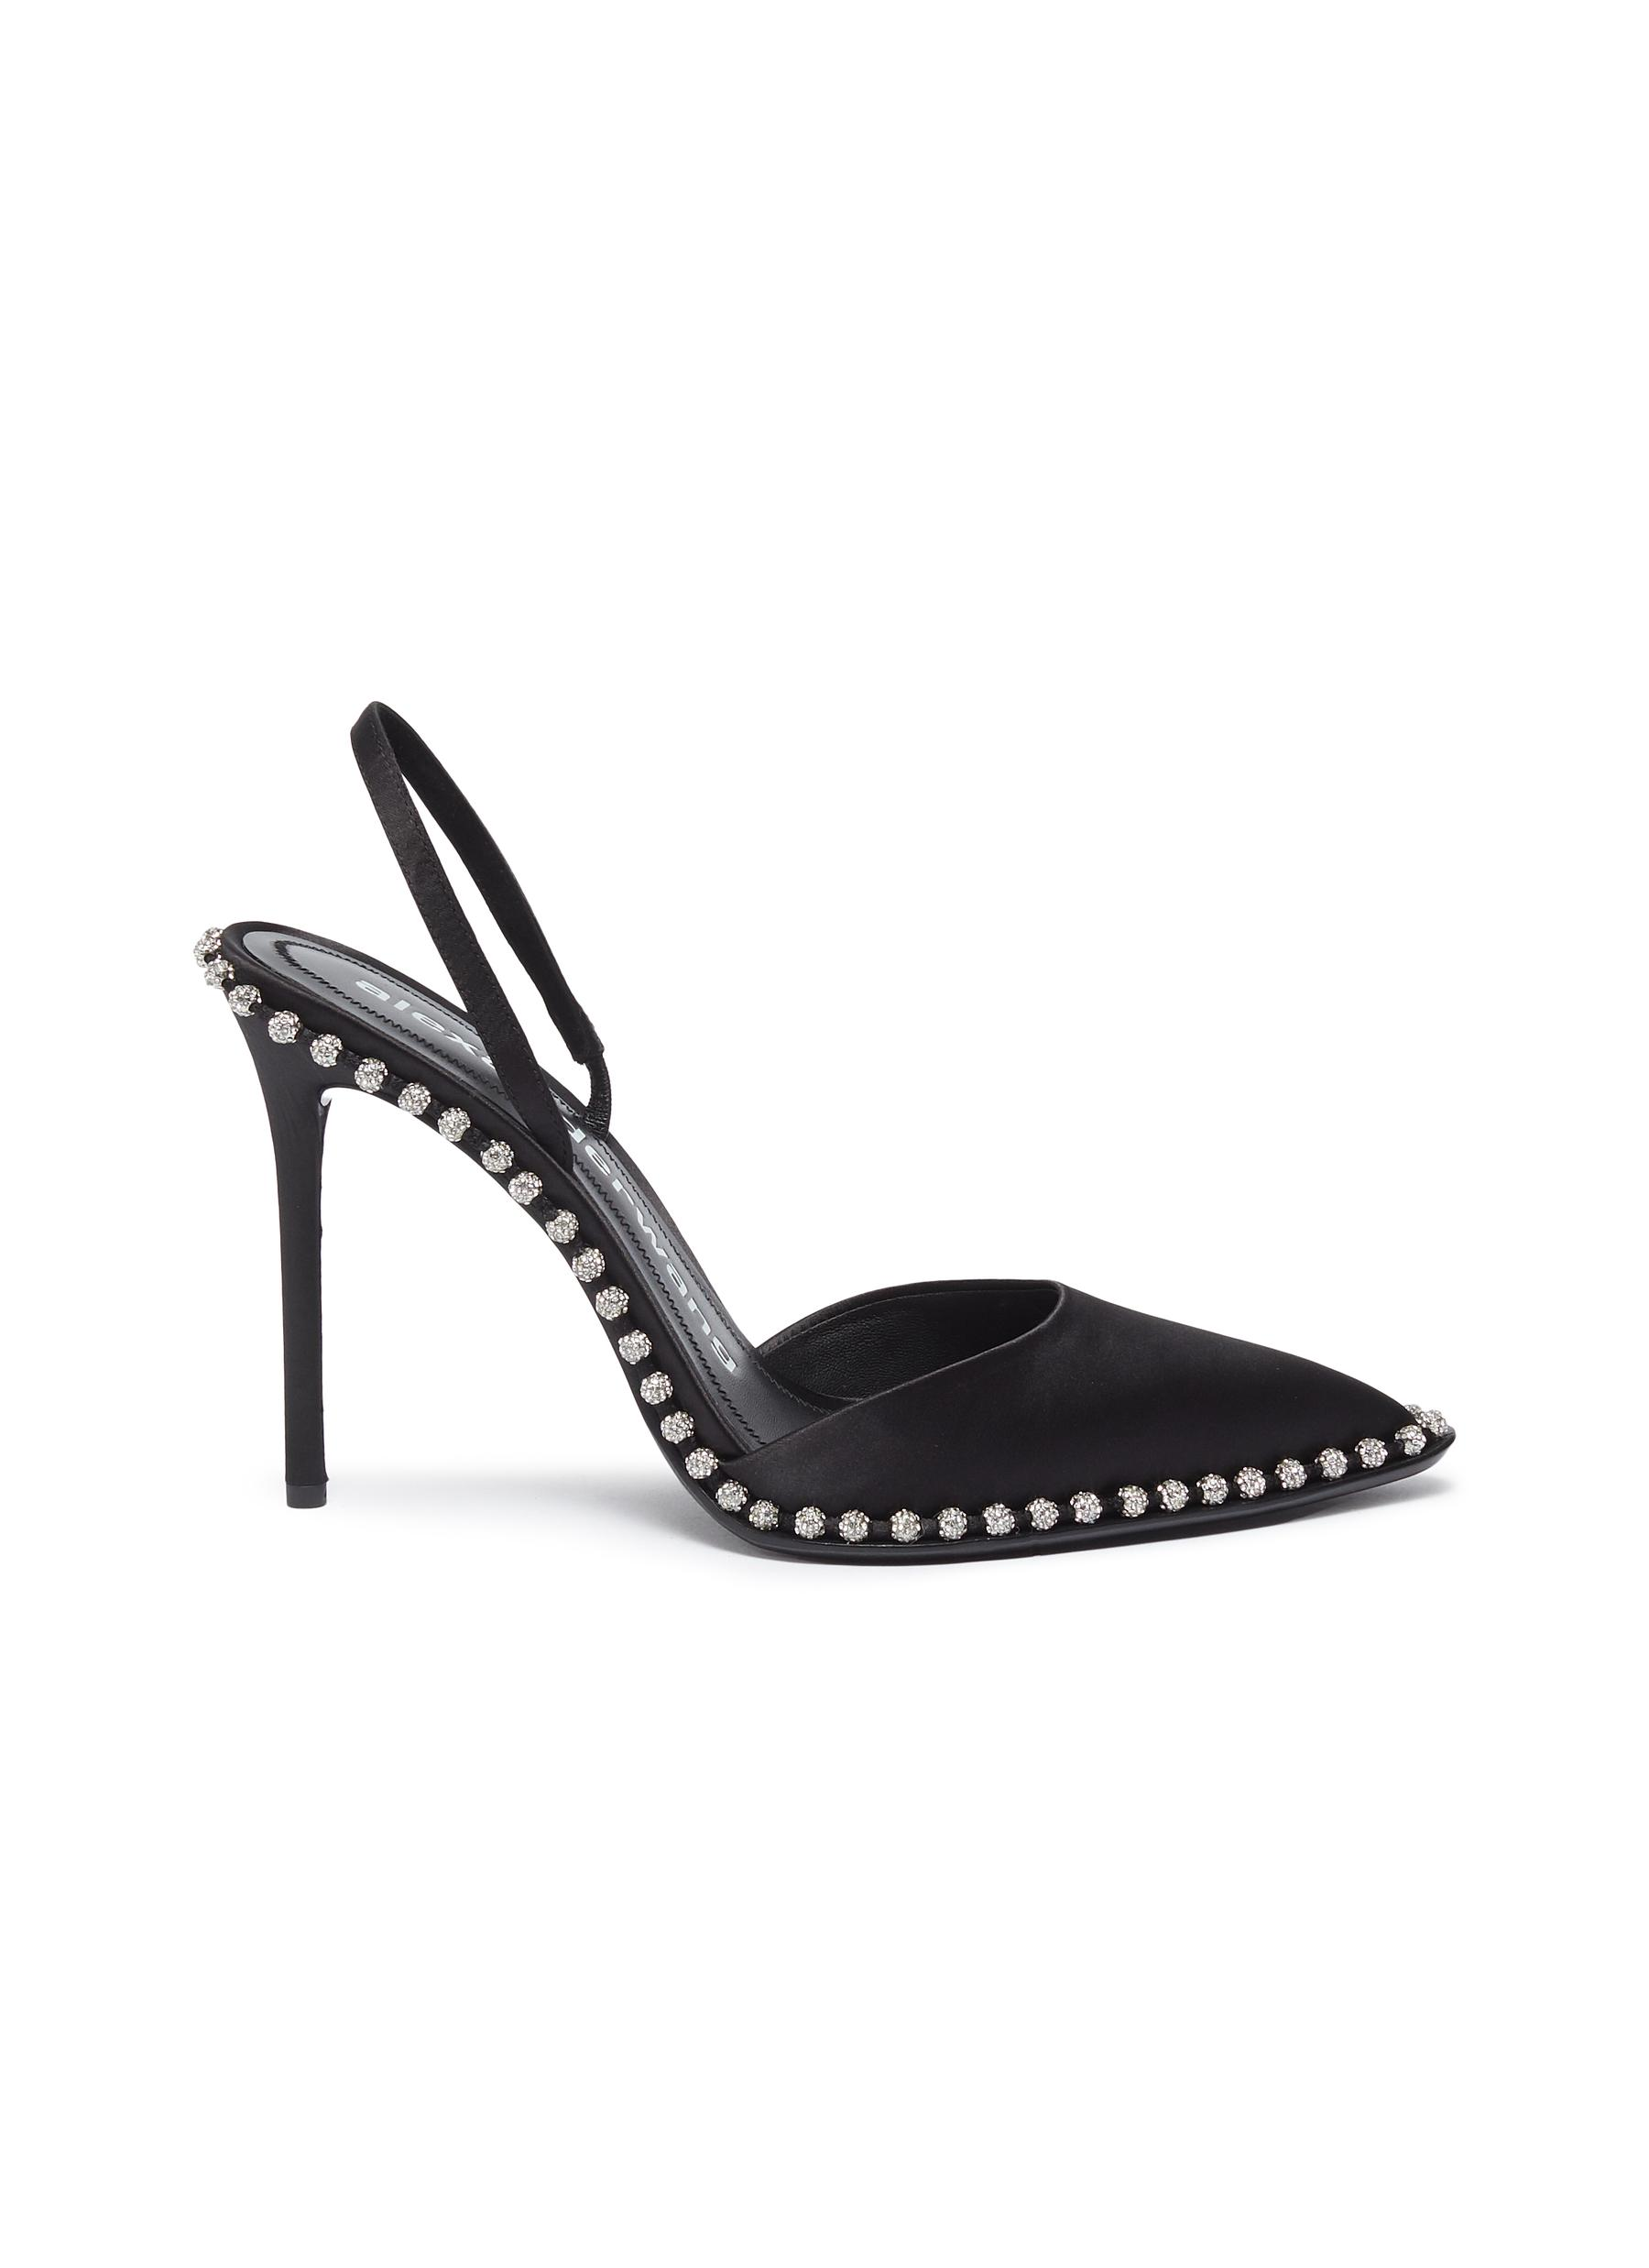 Rina glass crystal ball chain satin slingback pumps by Alexanderwang